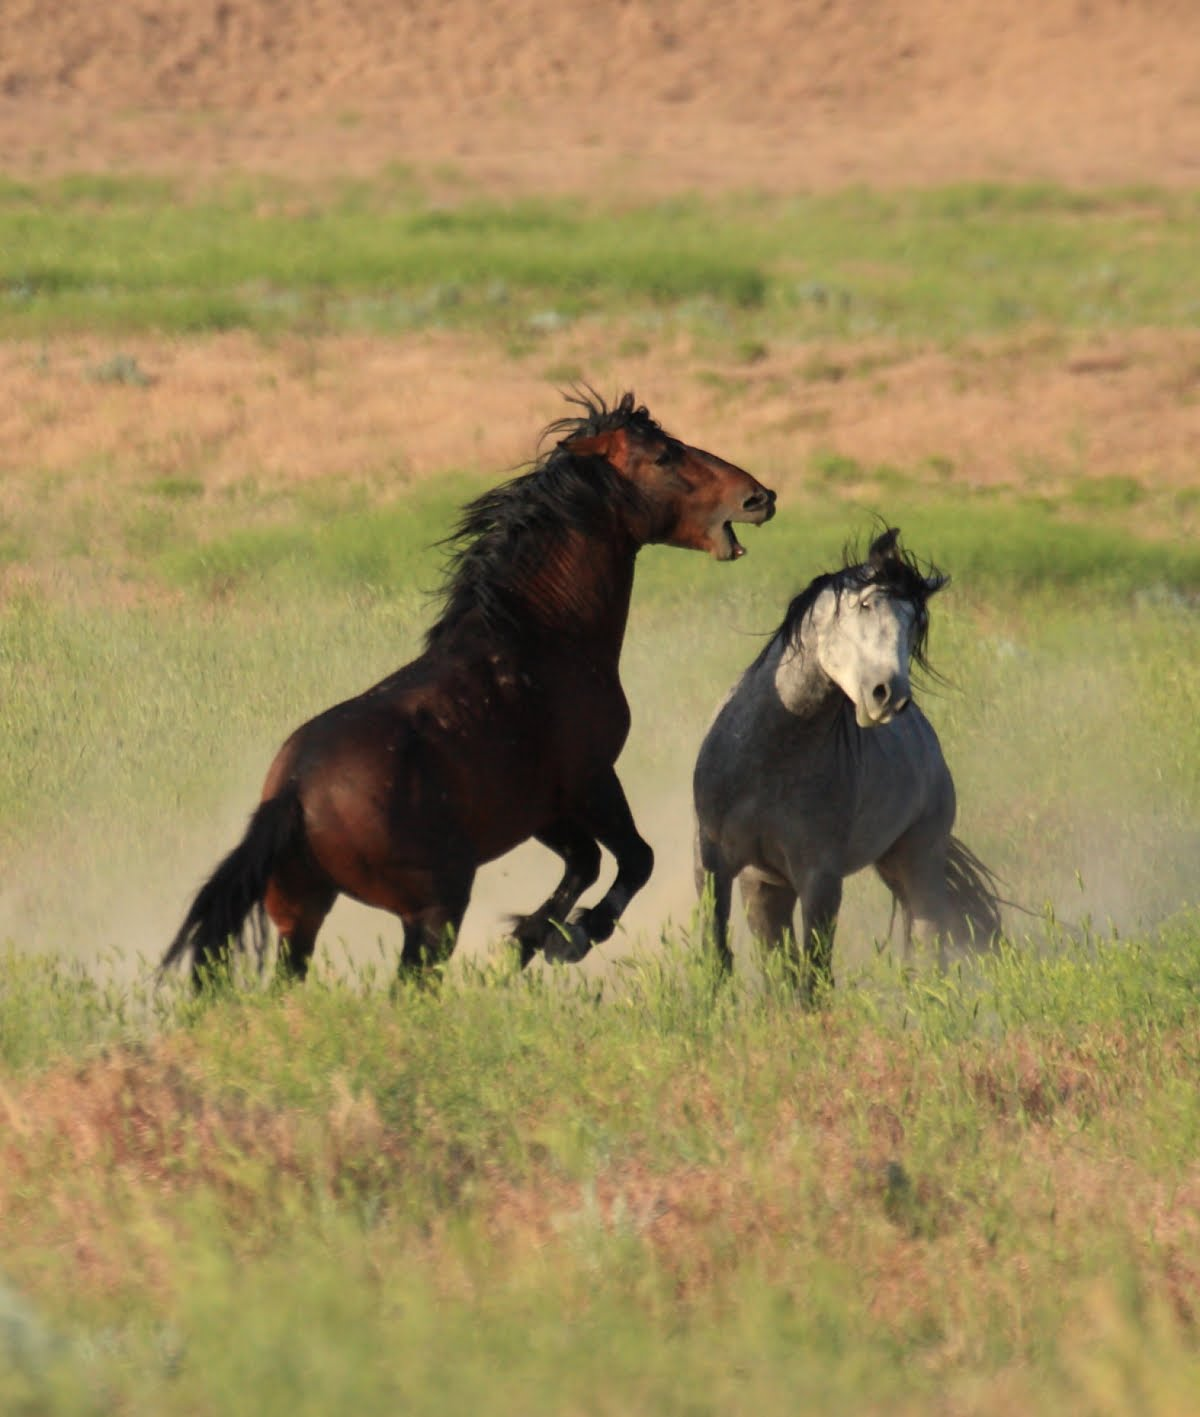 wild horse christian personals Wild horse dating: browse wild horse, co singles & personals find a date in the rocky centennial state of colorado are you single and looking for love in colorado.